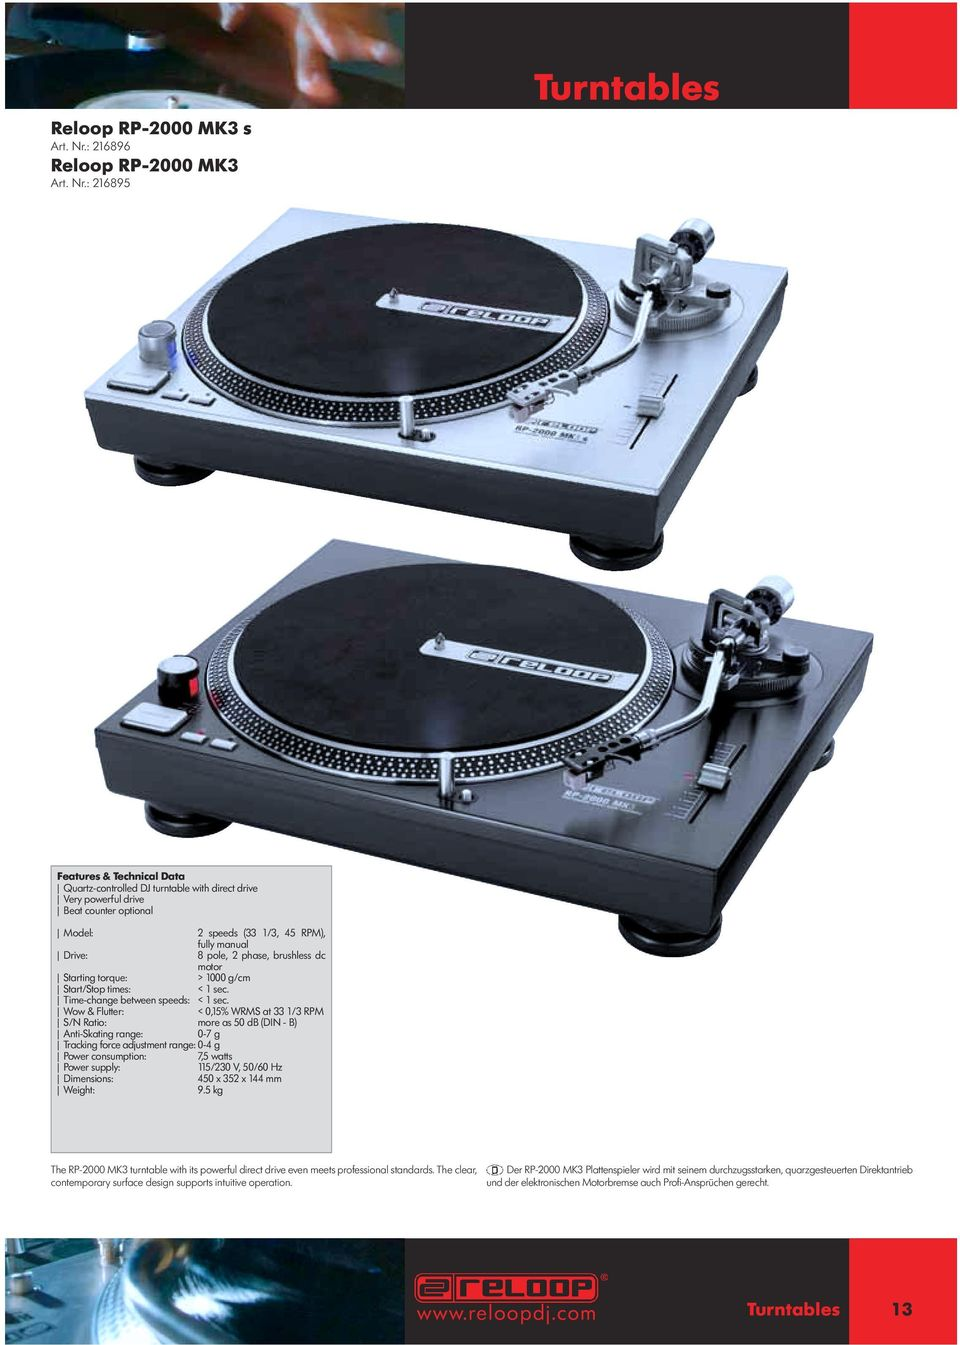 : 216895 Turntables Quartz-controlled DJ turntable with direct drive Very powerful drive Beat counter optional Model: 2 speeds (33 1/3, 45 RPM), fully manual Drive: 8 pole, 2 phase, brushless dc